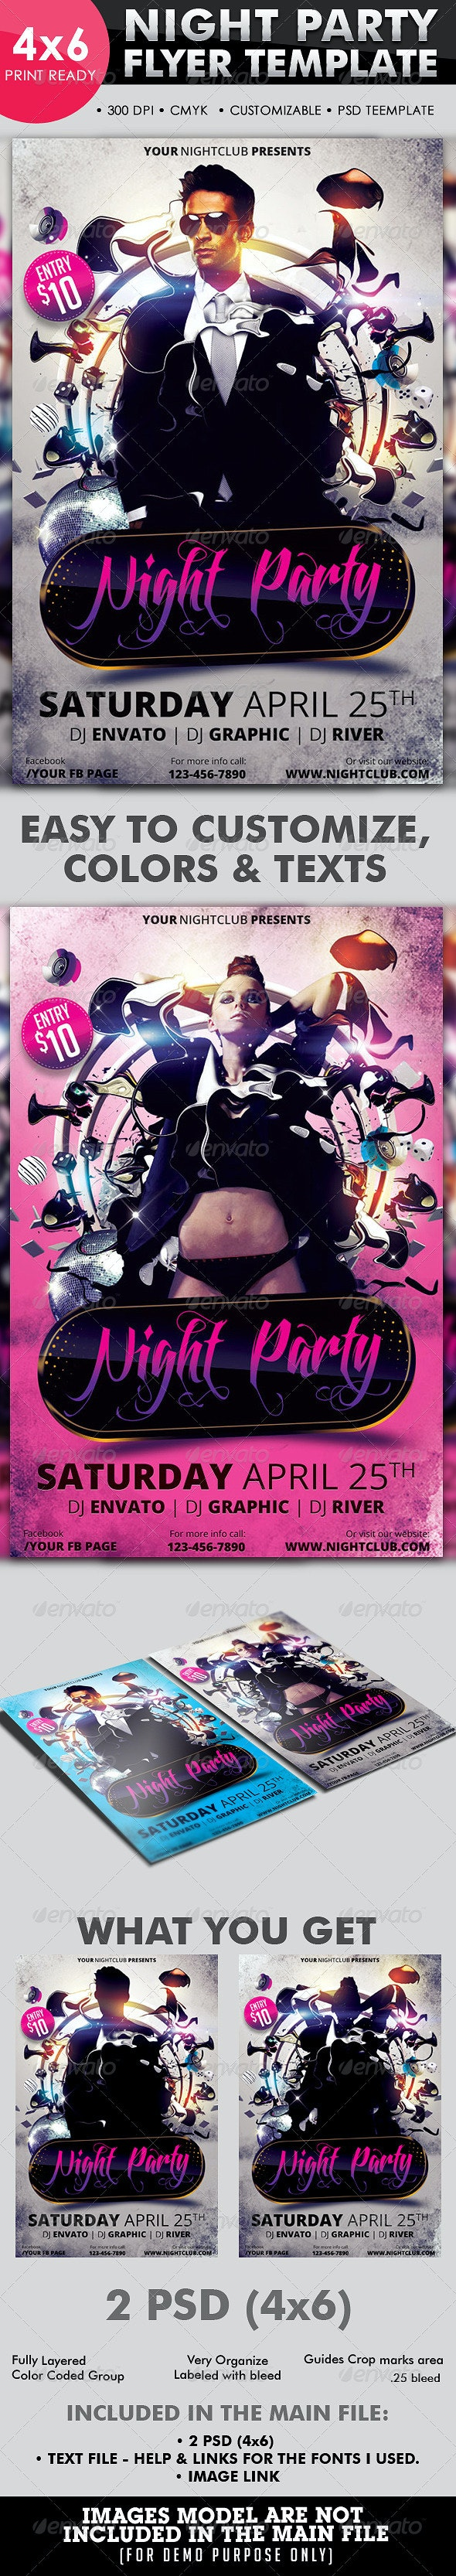 Night Party Flyer Template - Flyers Print Templates